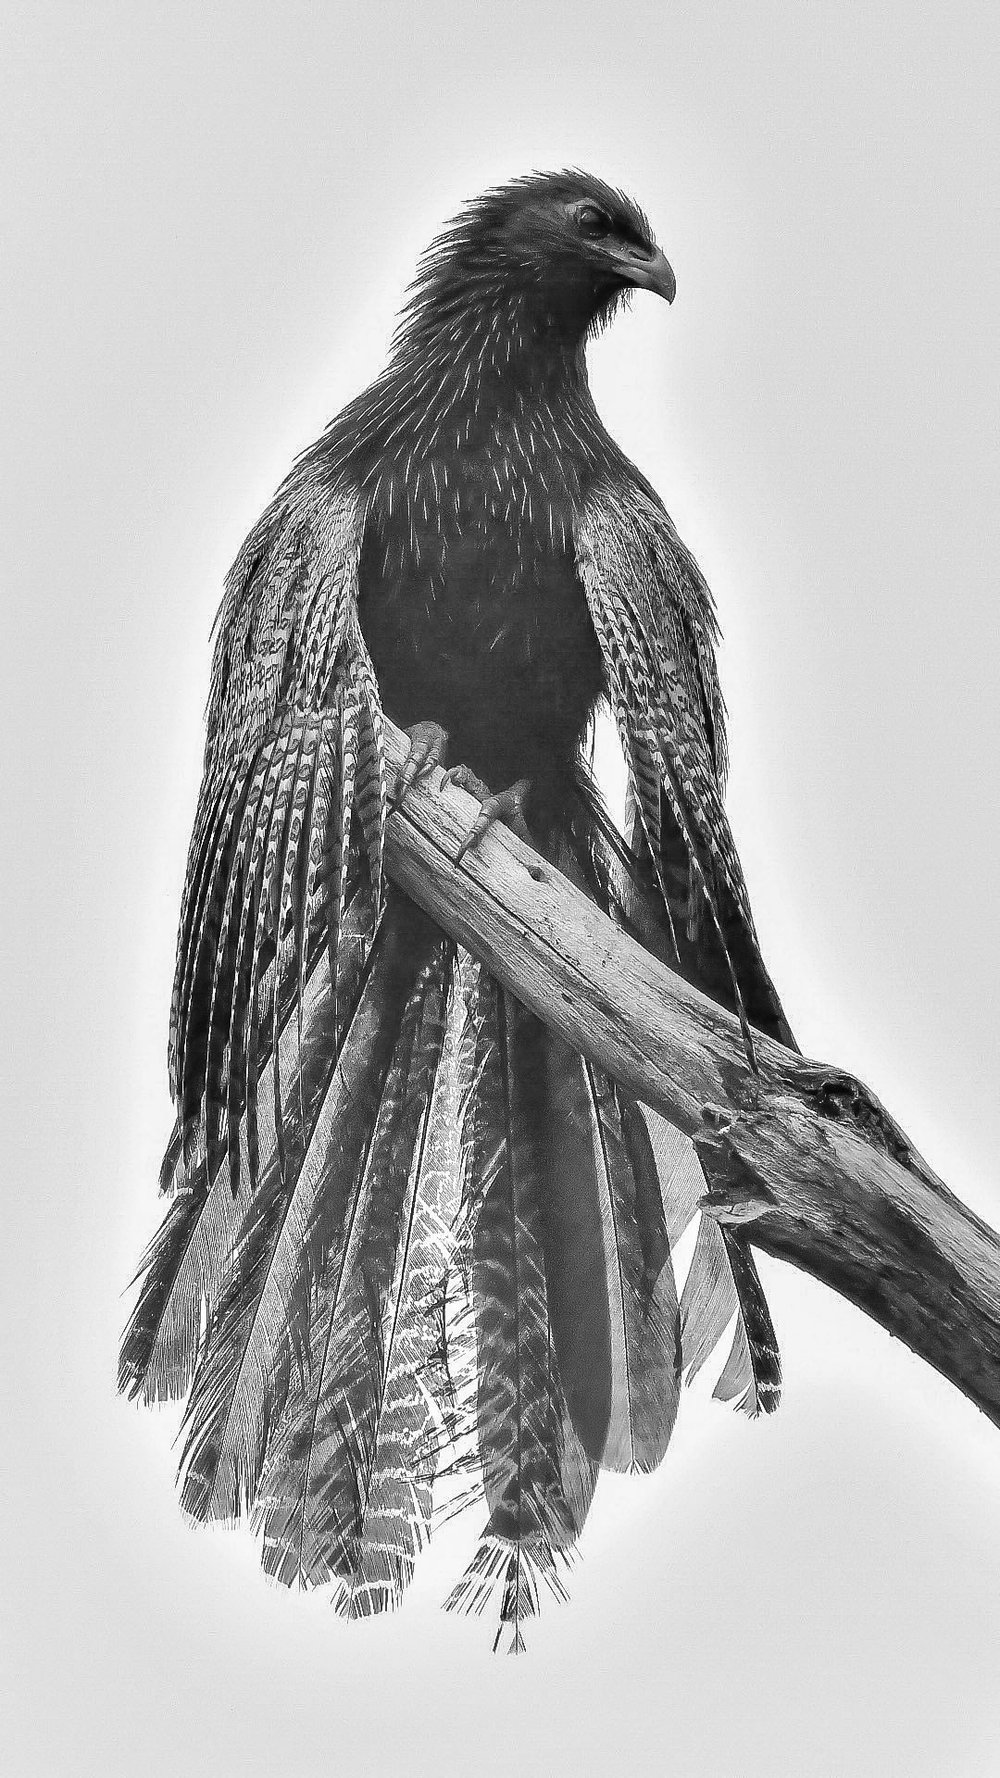 Sorrowful Coucal by Sylwester Chyb